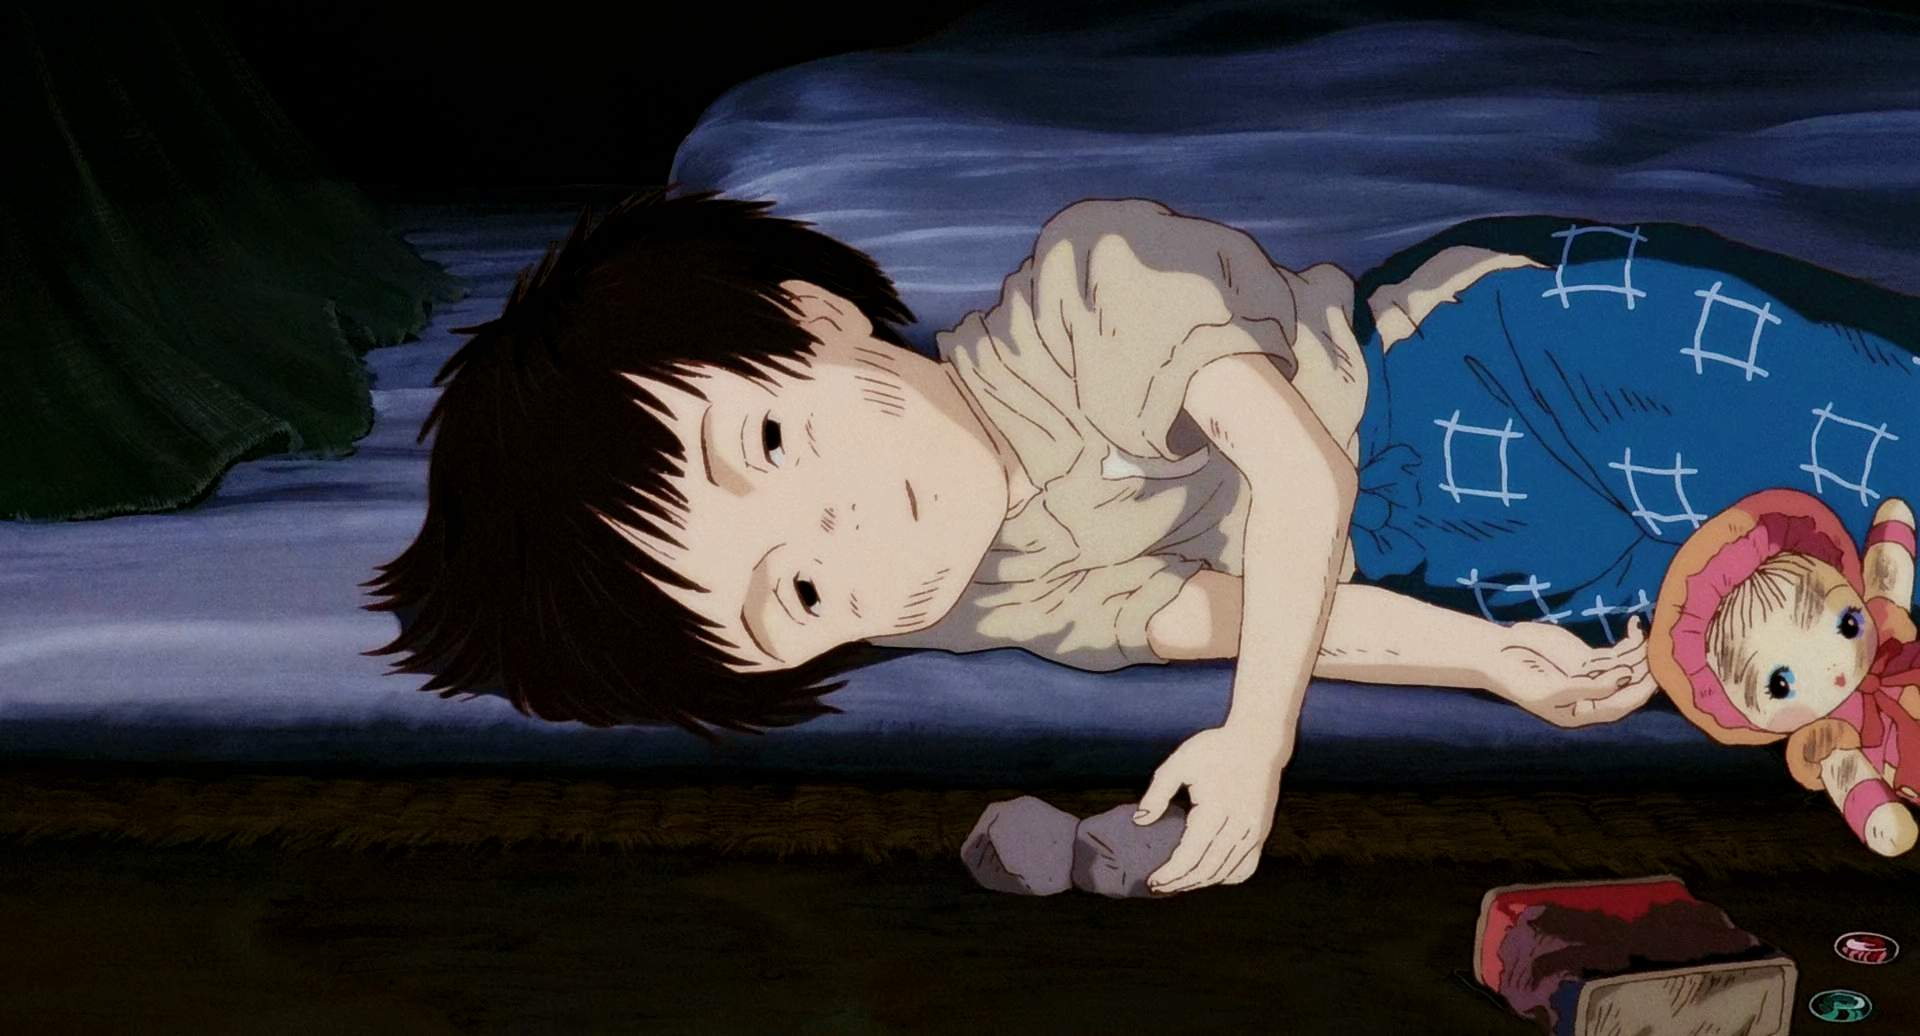 GraveoftheFireflies-Movie1988-SS6-O Grave of the Fireflies Movie Review